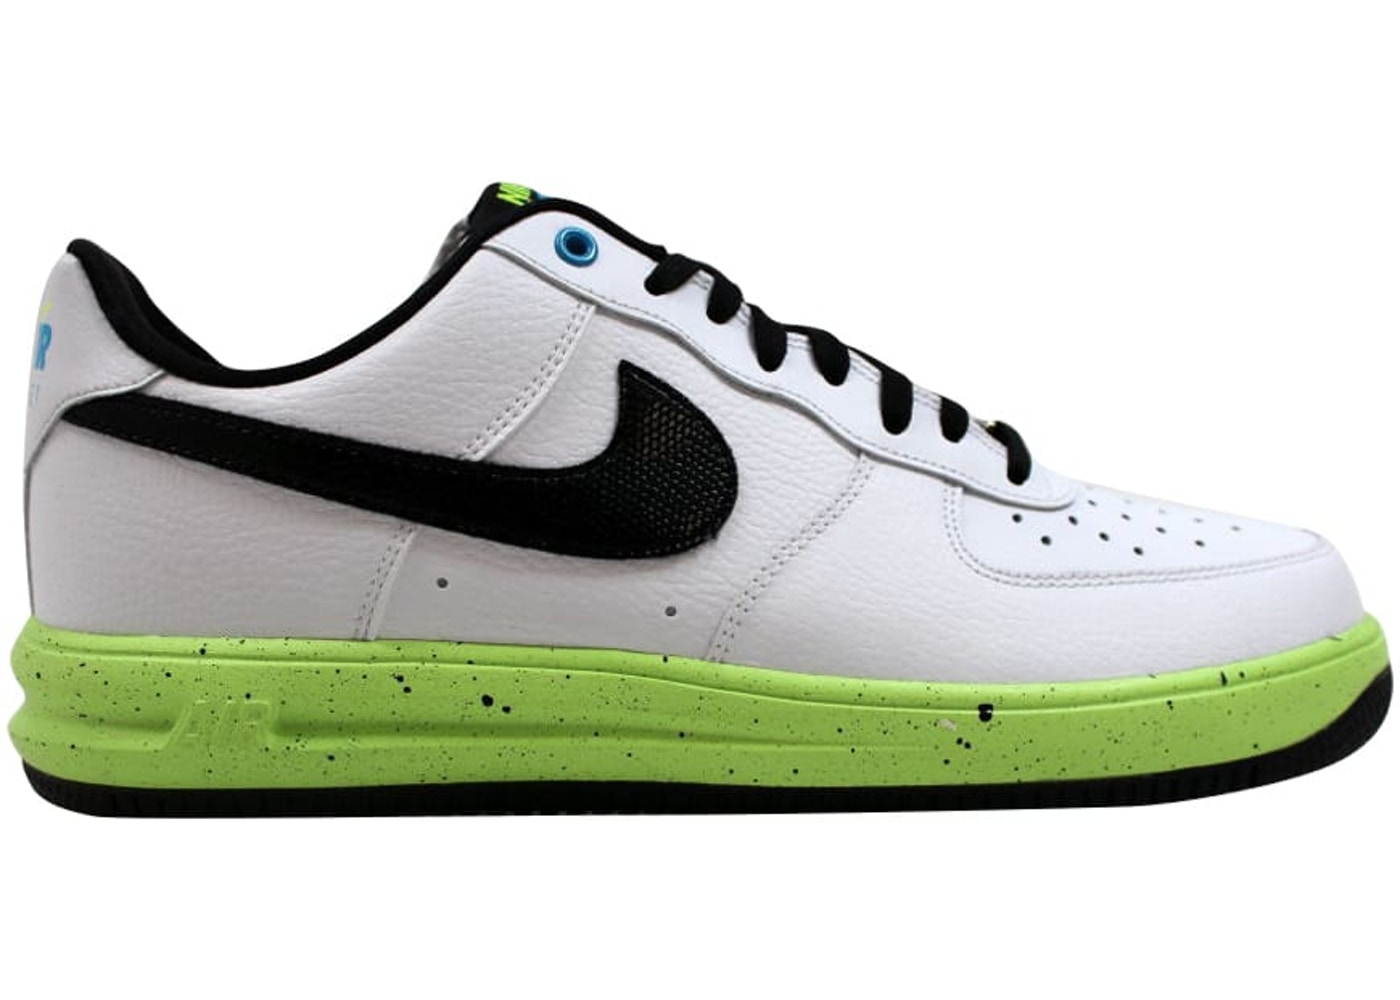 promo code 13b8d 0e503 Nike Air Force Other Shoes - Price Premium